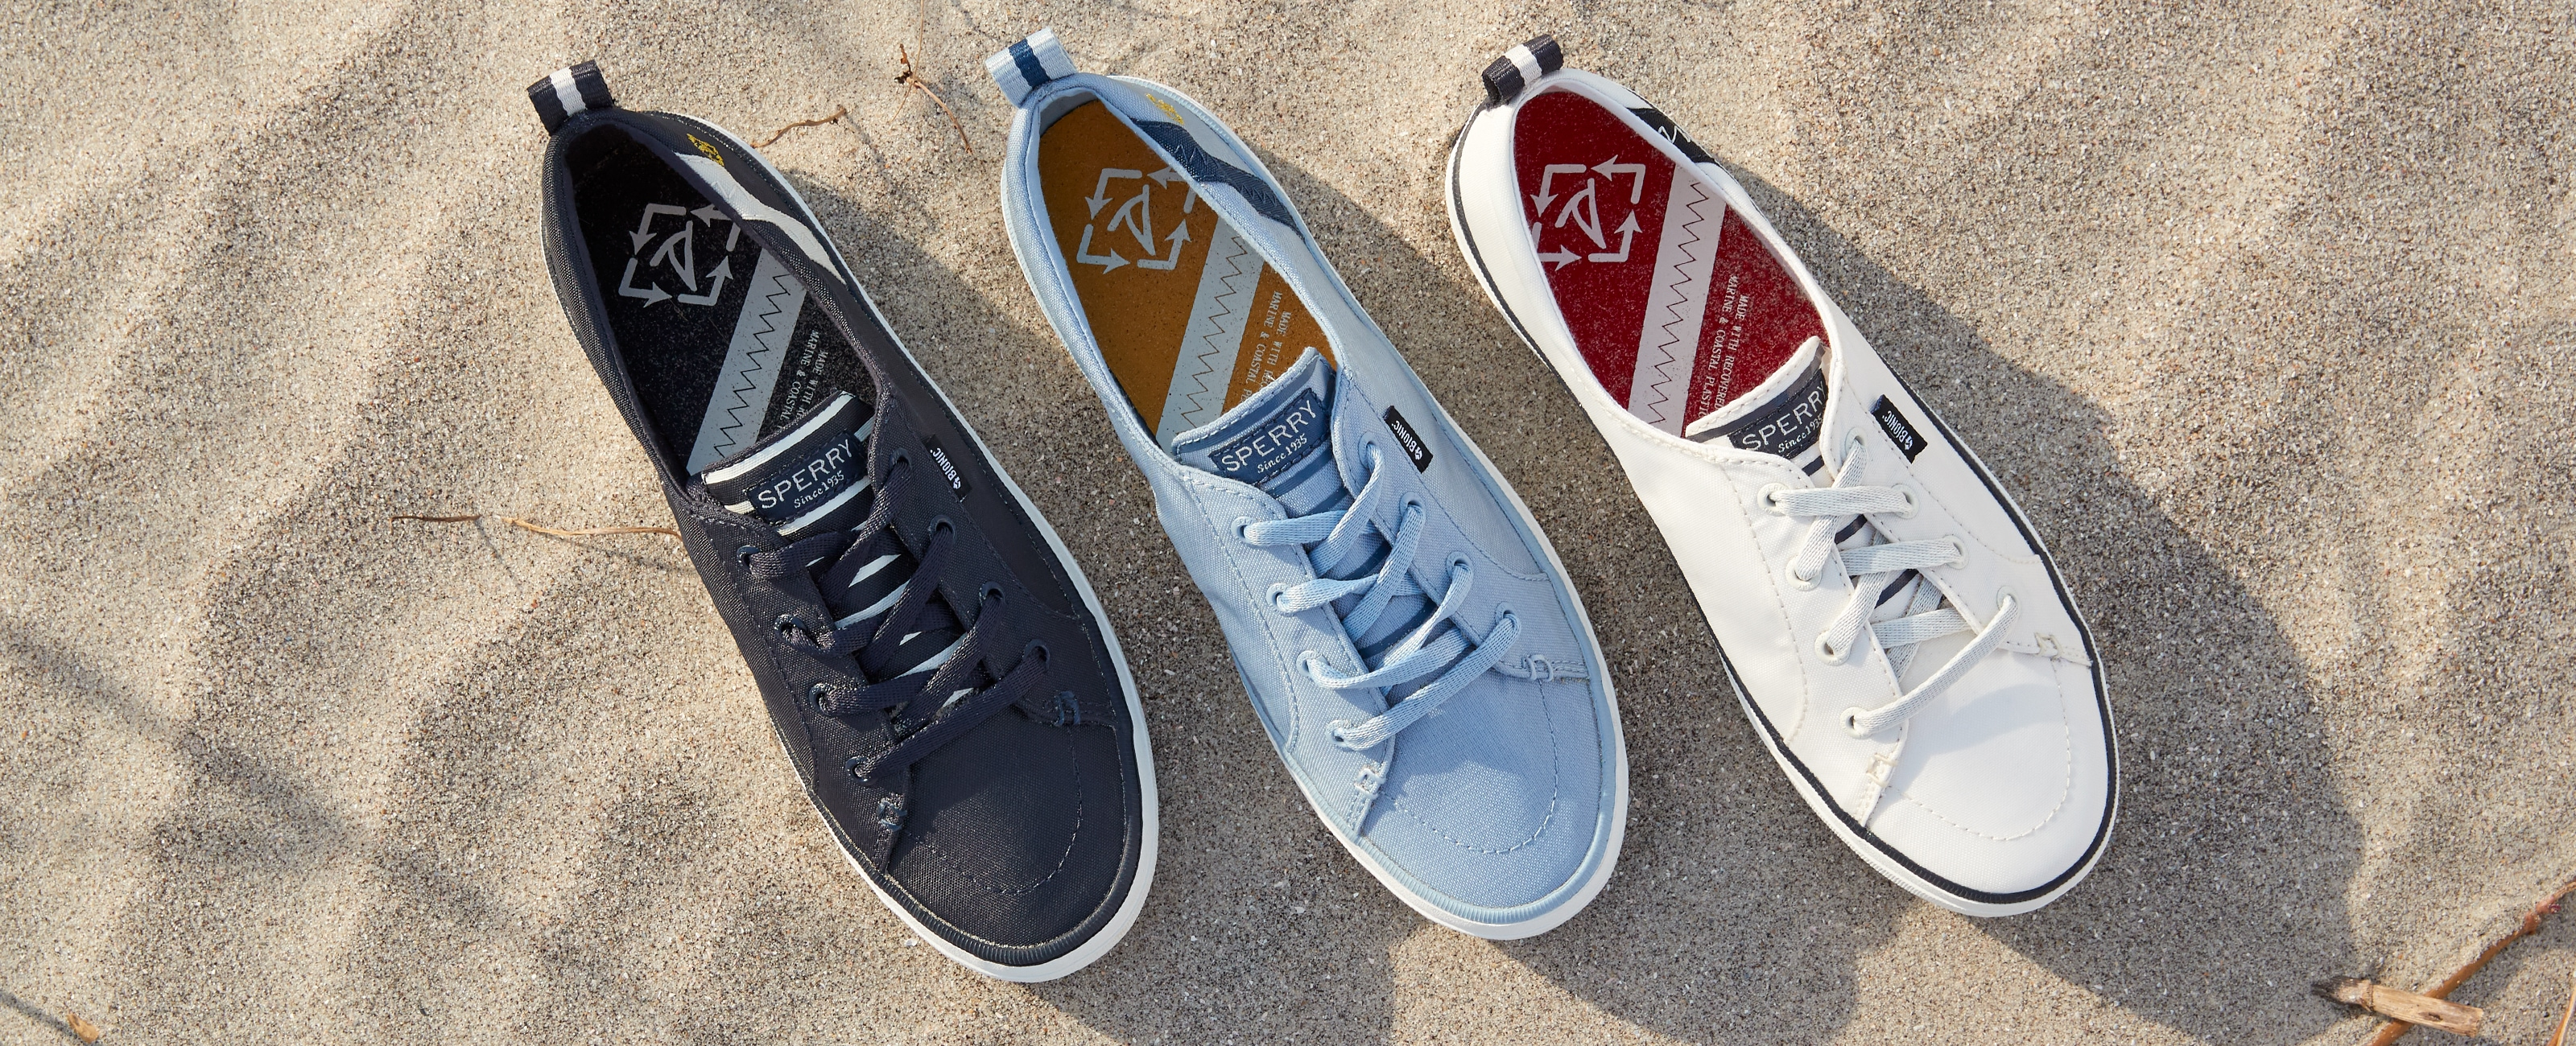 Top view of Women's Crest Vibe BIONIC sneaker in 3 colors.